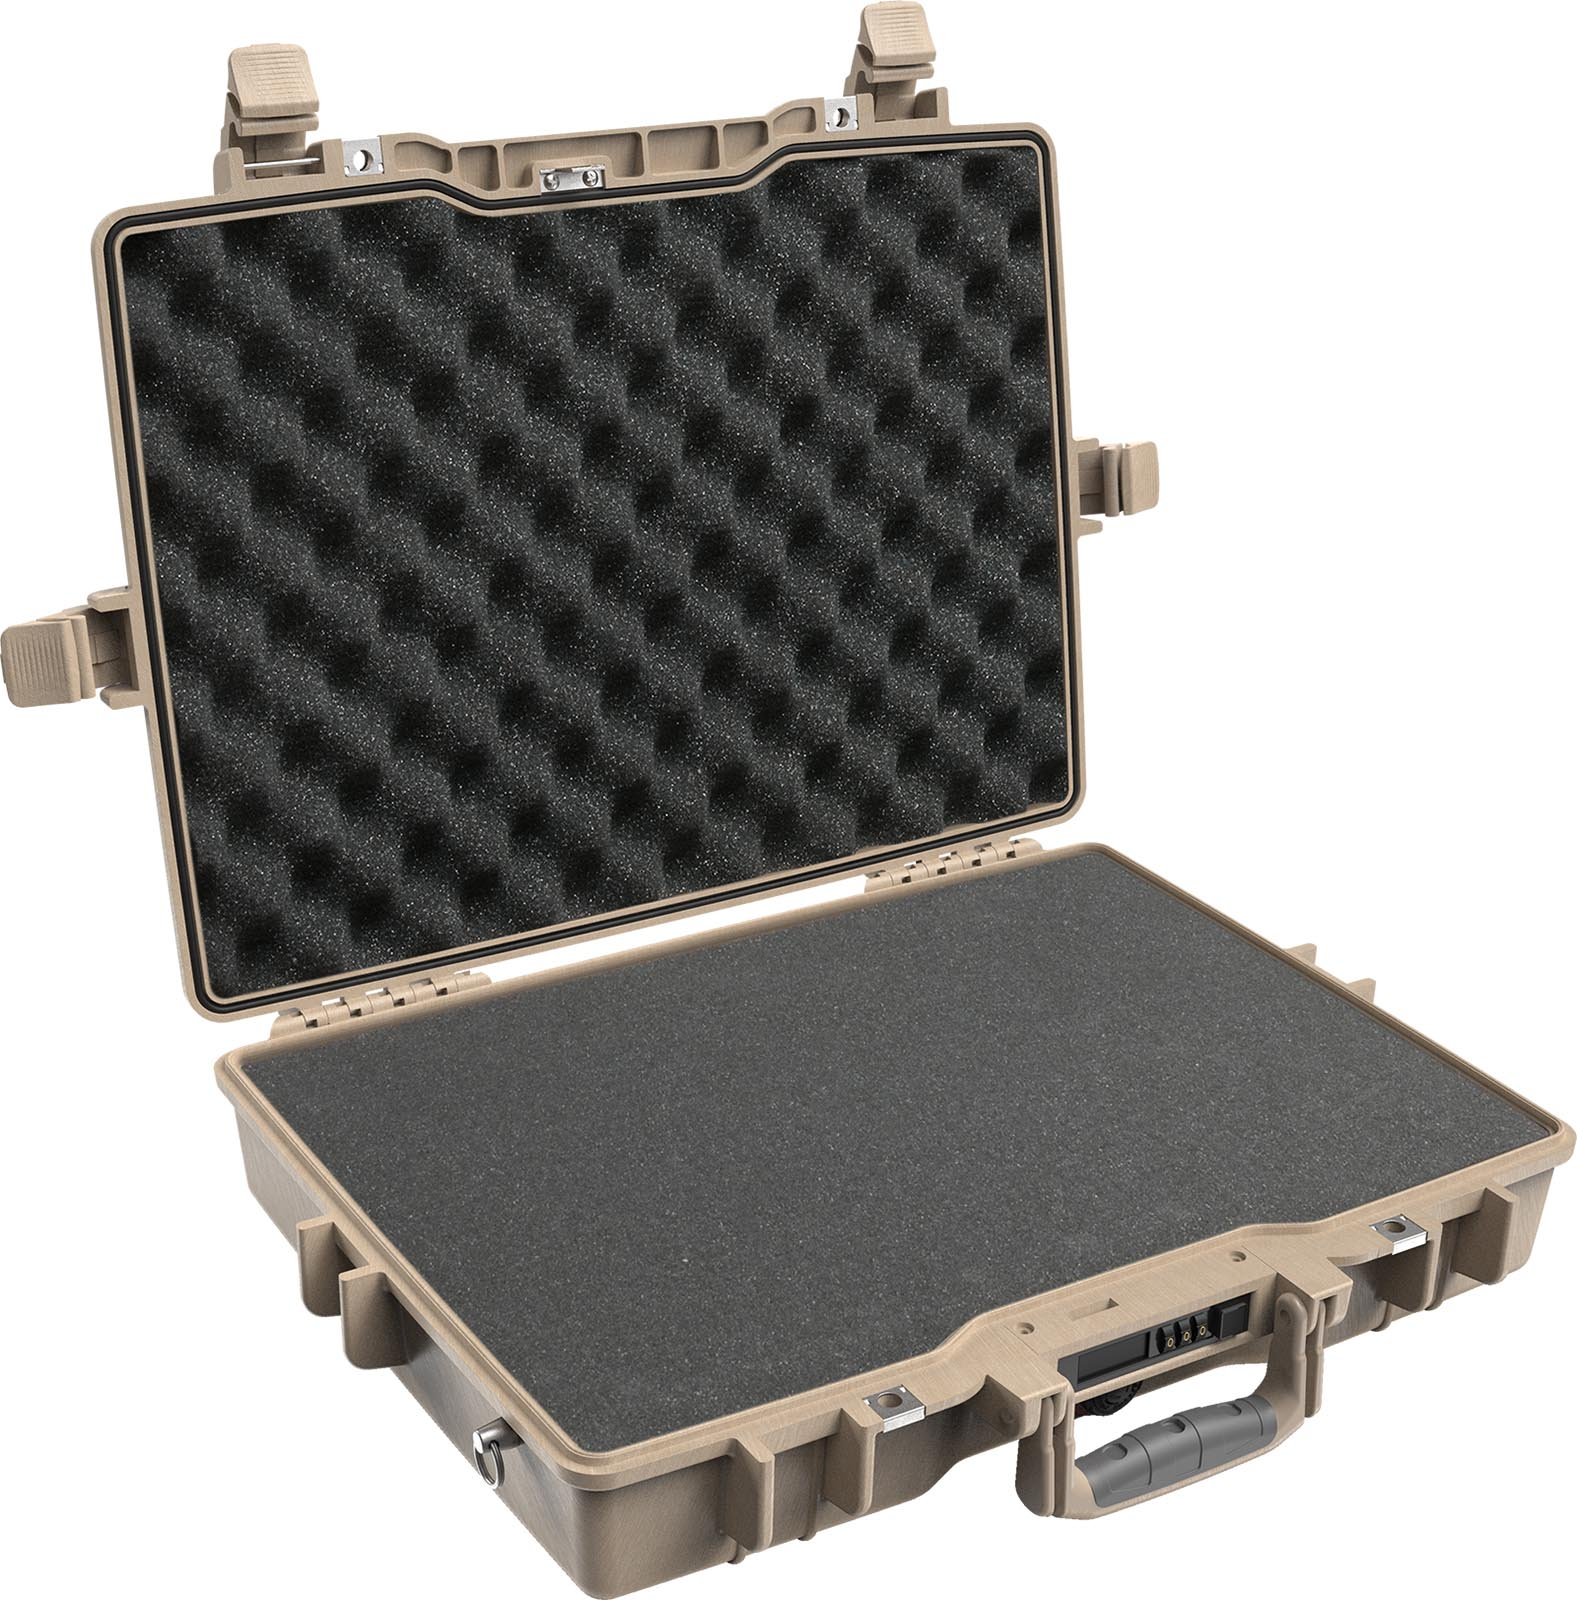 hight resolution of pelican 1495 protector desert tan foam case